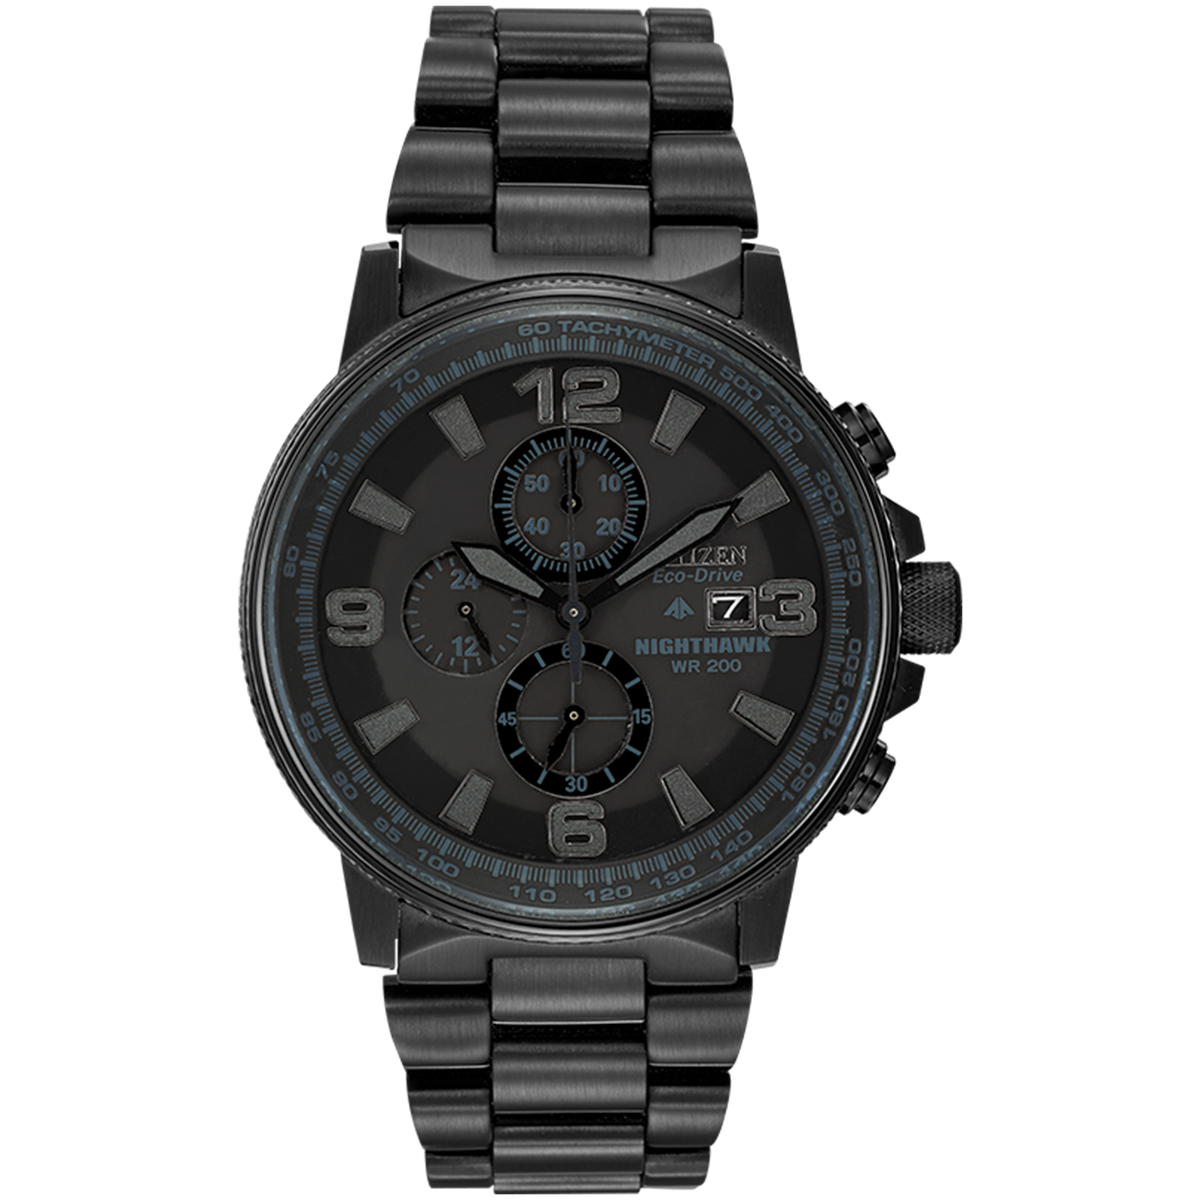 Citizen Eco-Drive - Nighthawk